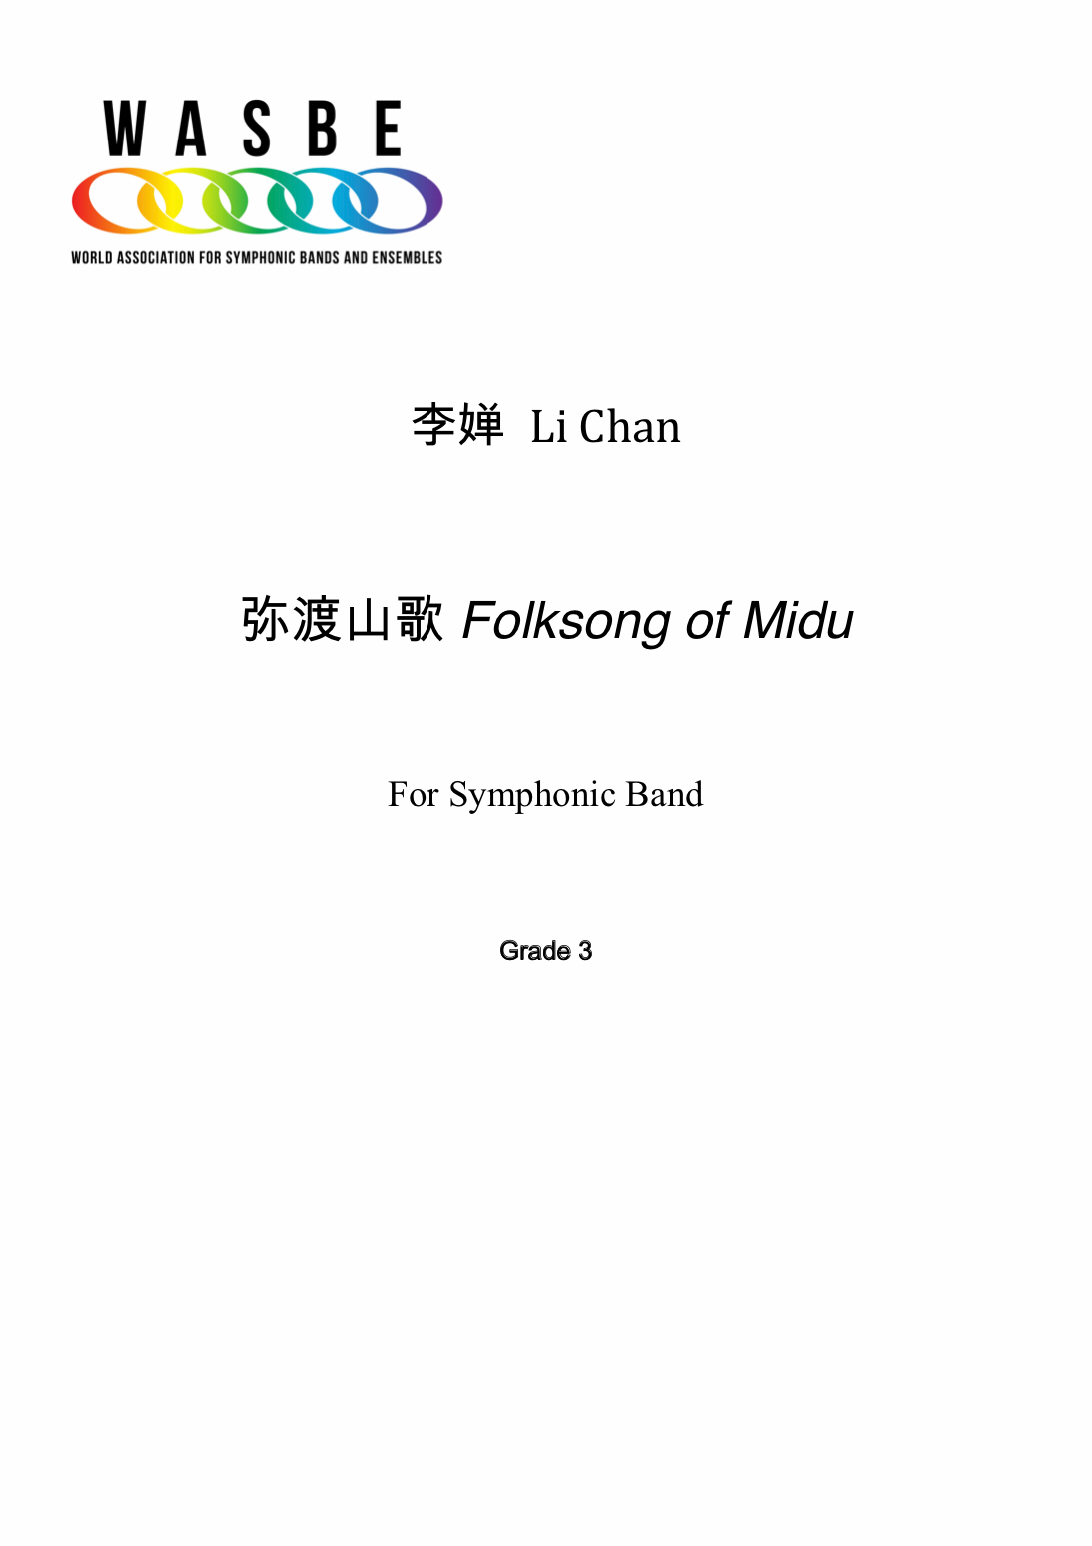 Folksong Of Midu by Li Chan